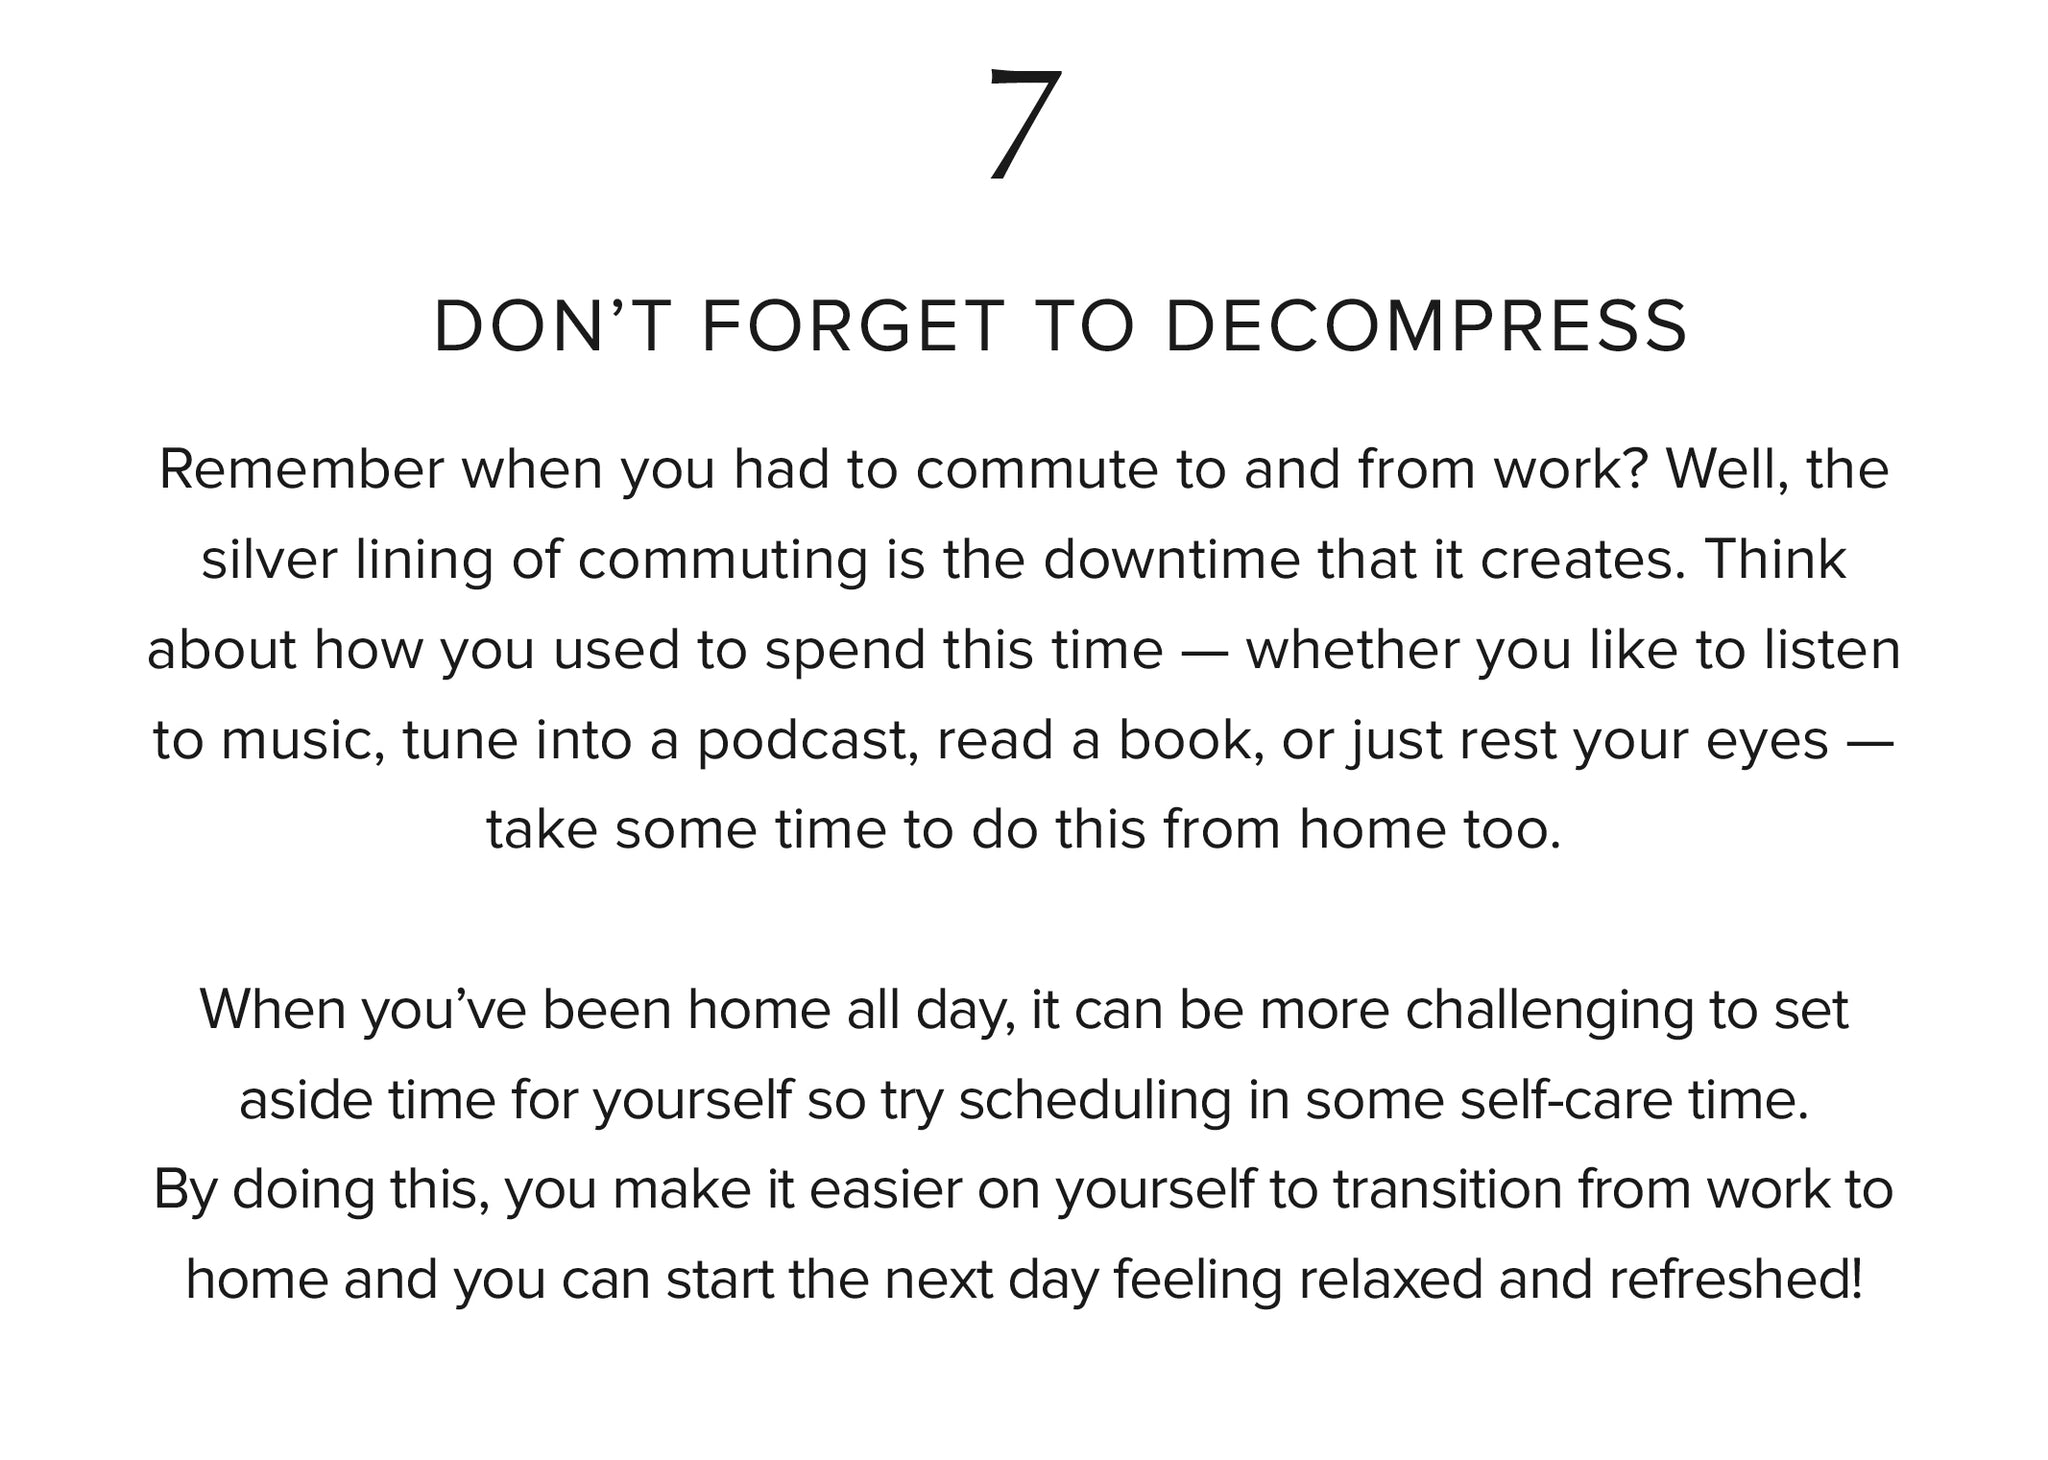 7. Don't forget to decompress